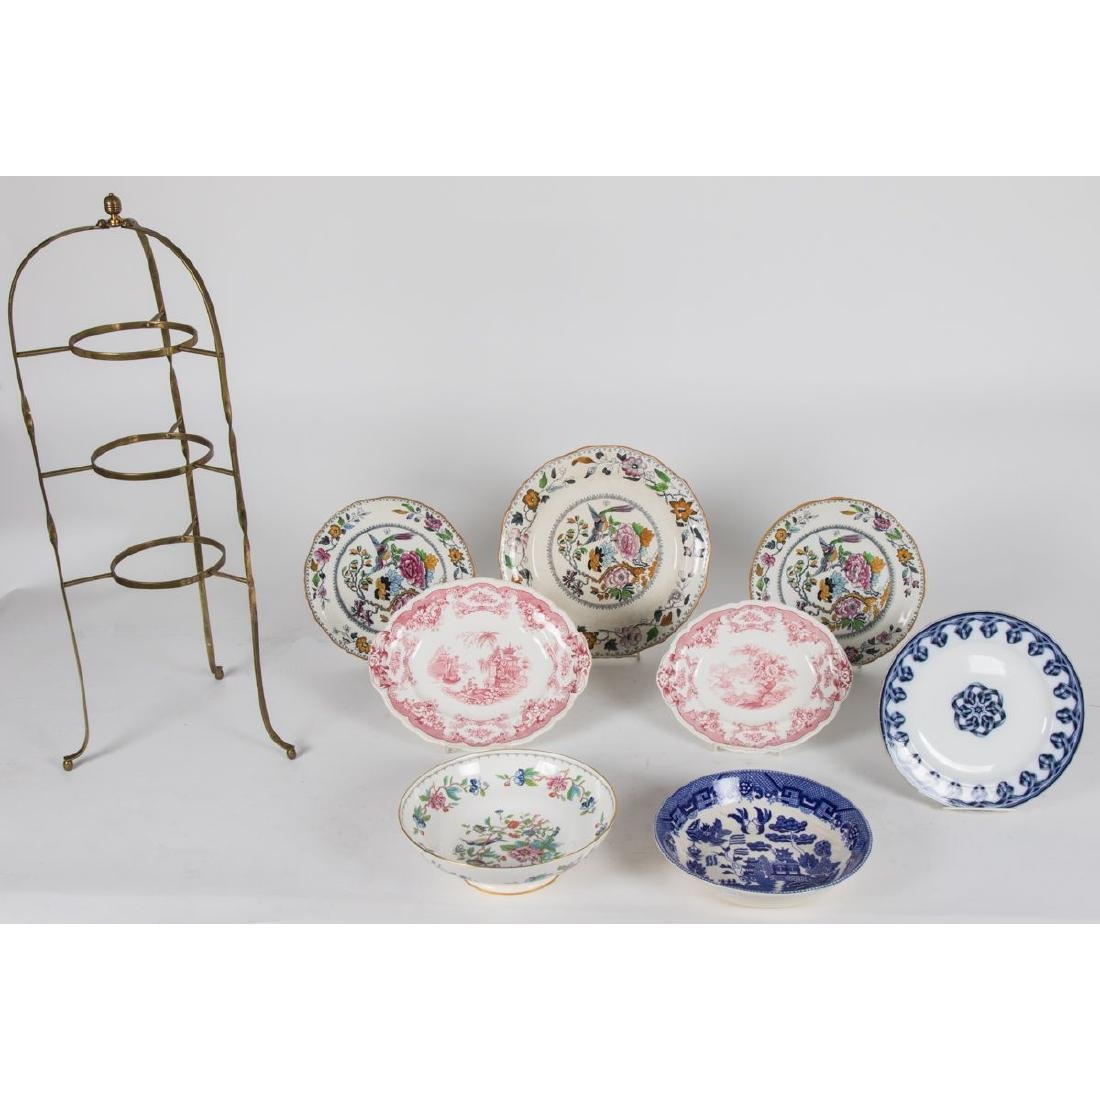 An English Brass Plate Stand, 19th/20th Century,